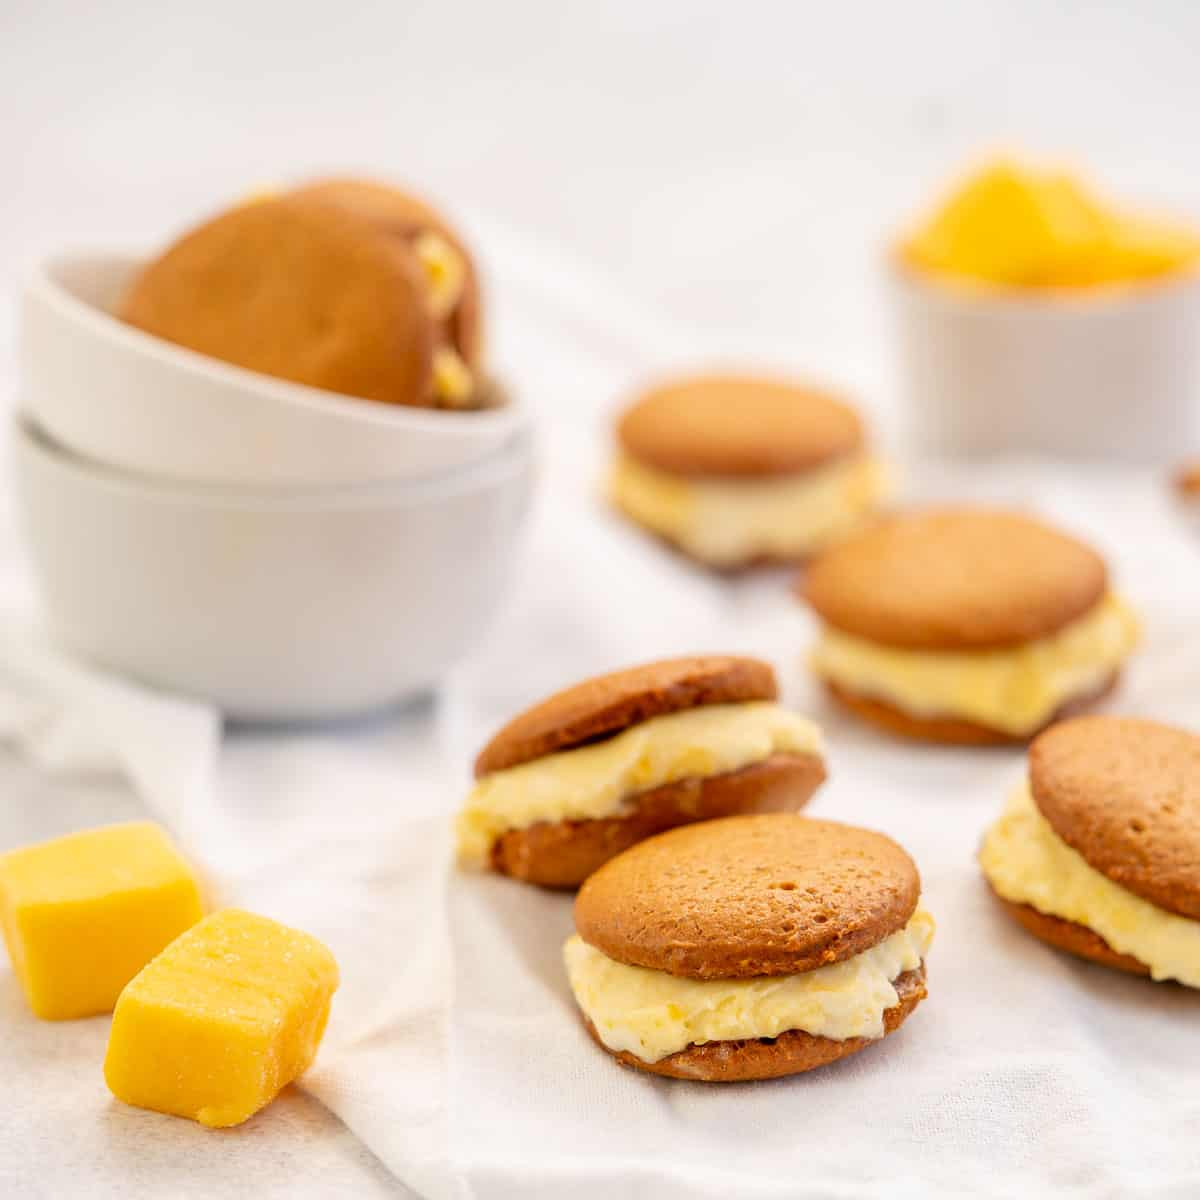 Ginger biscuits sandwiched together with mango ice cream, sittin on a crinkled white linen napkin.